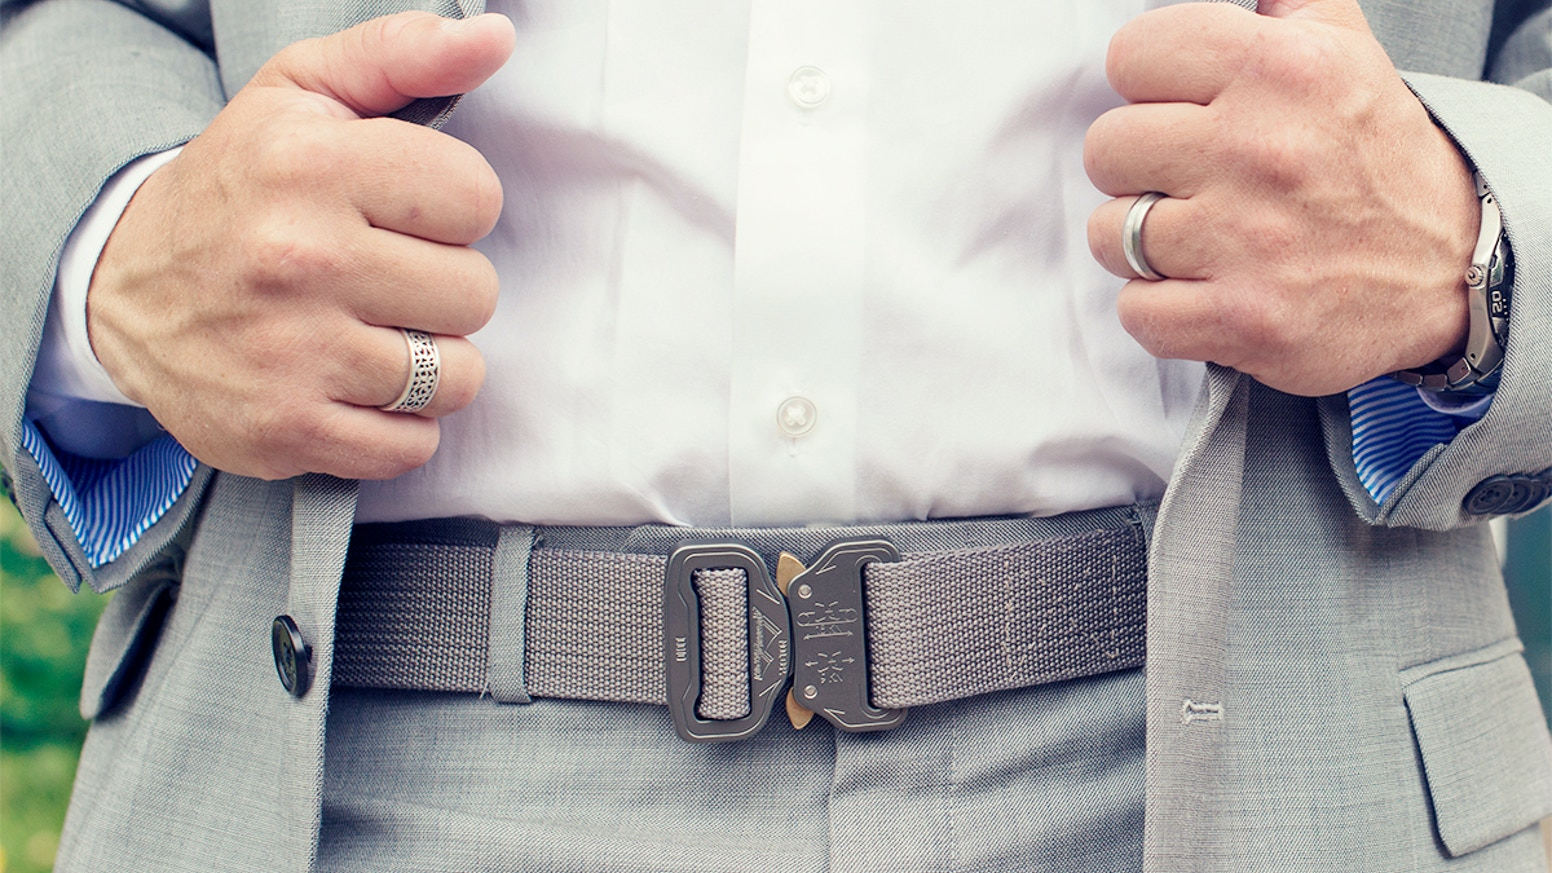 Klik Belts combine the strongest quick release buckle on the planet with premium materials to craft a belt that will outlive you.